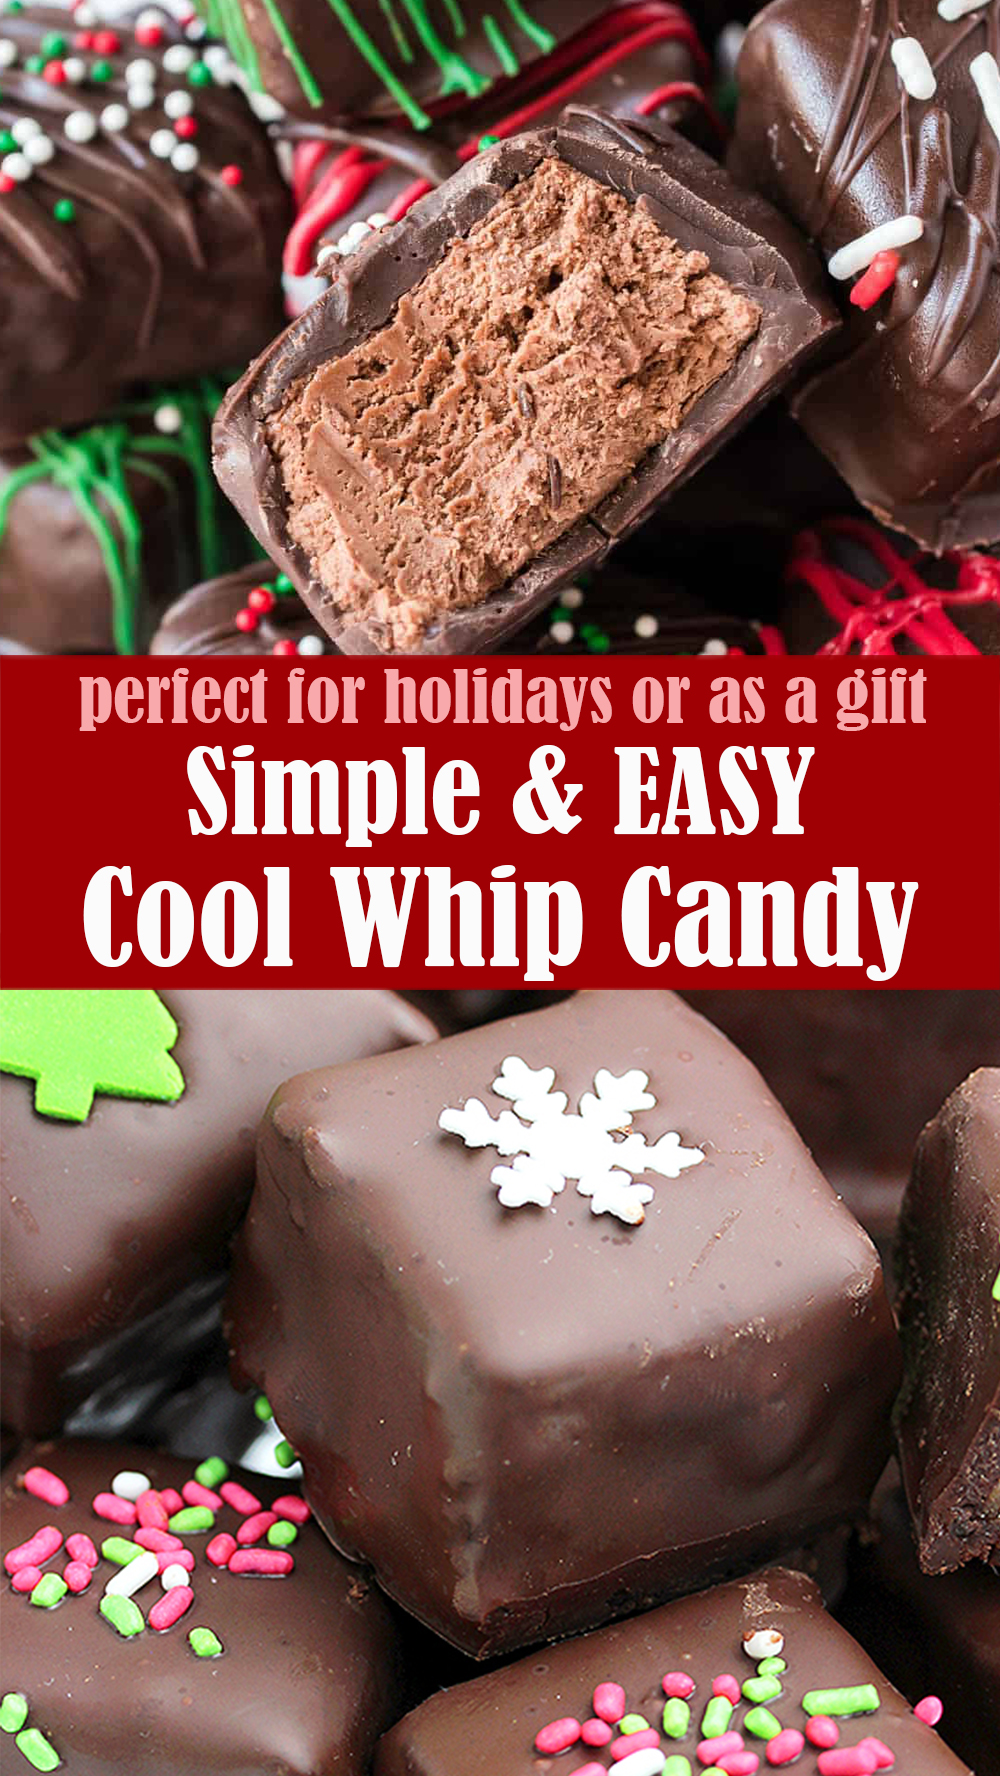 Easy Cool Whip Candy Recipe